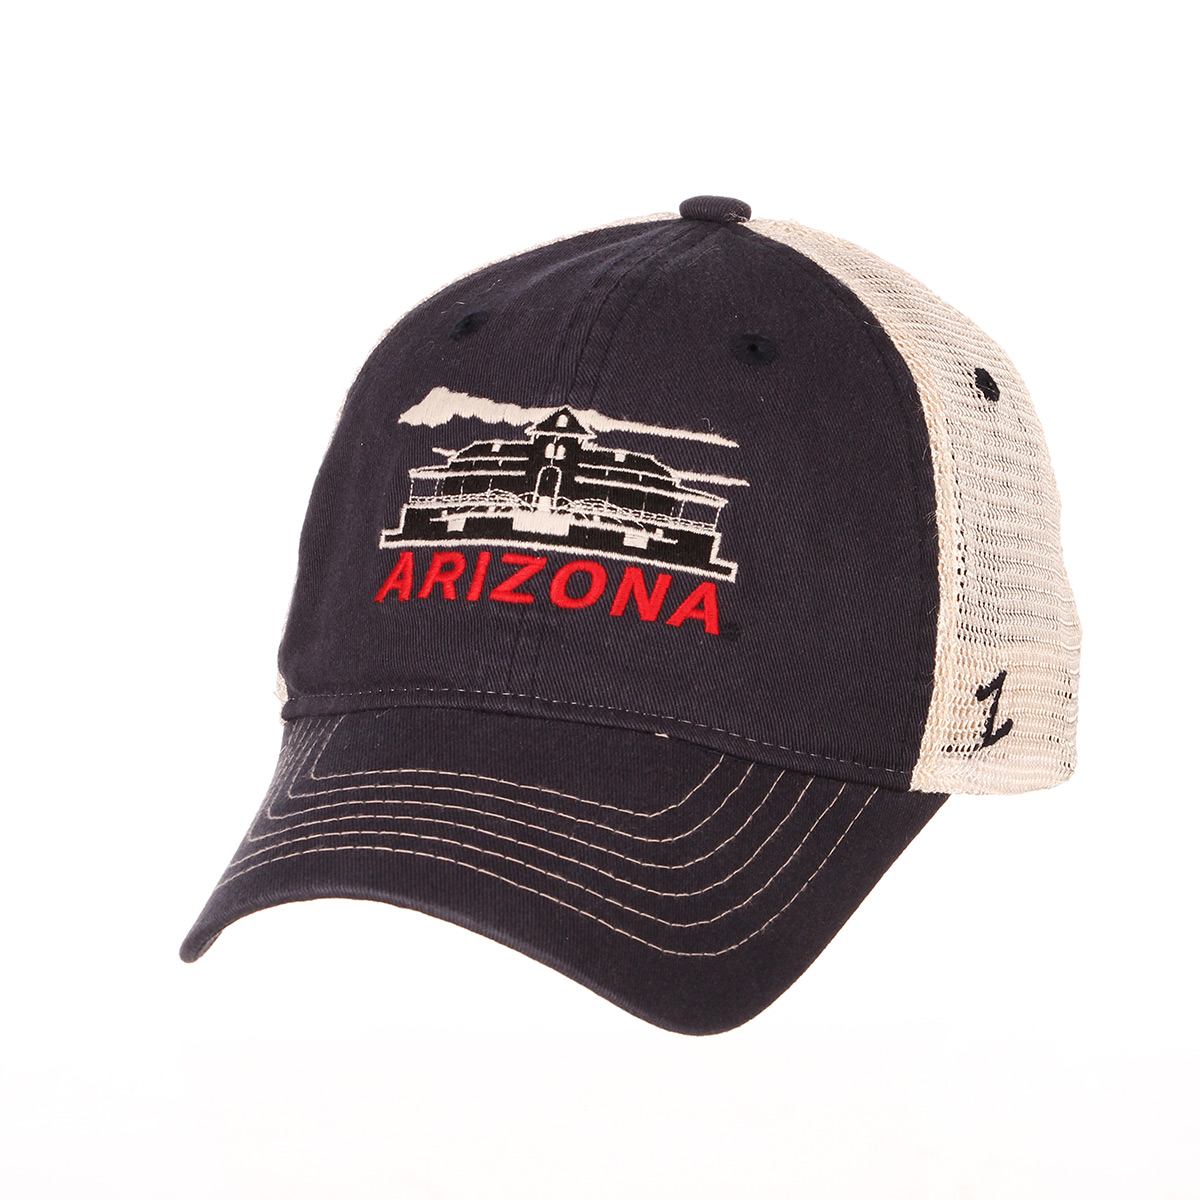 Image For Zephyr: Arizona Old Main Destination Trucker Cap